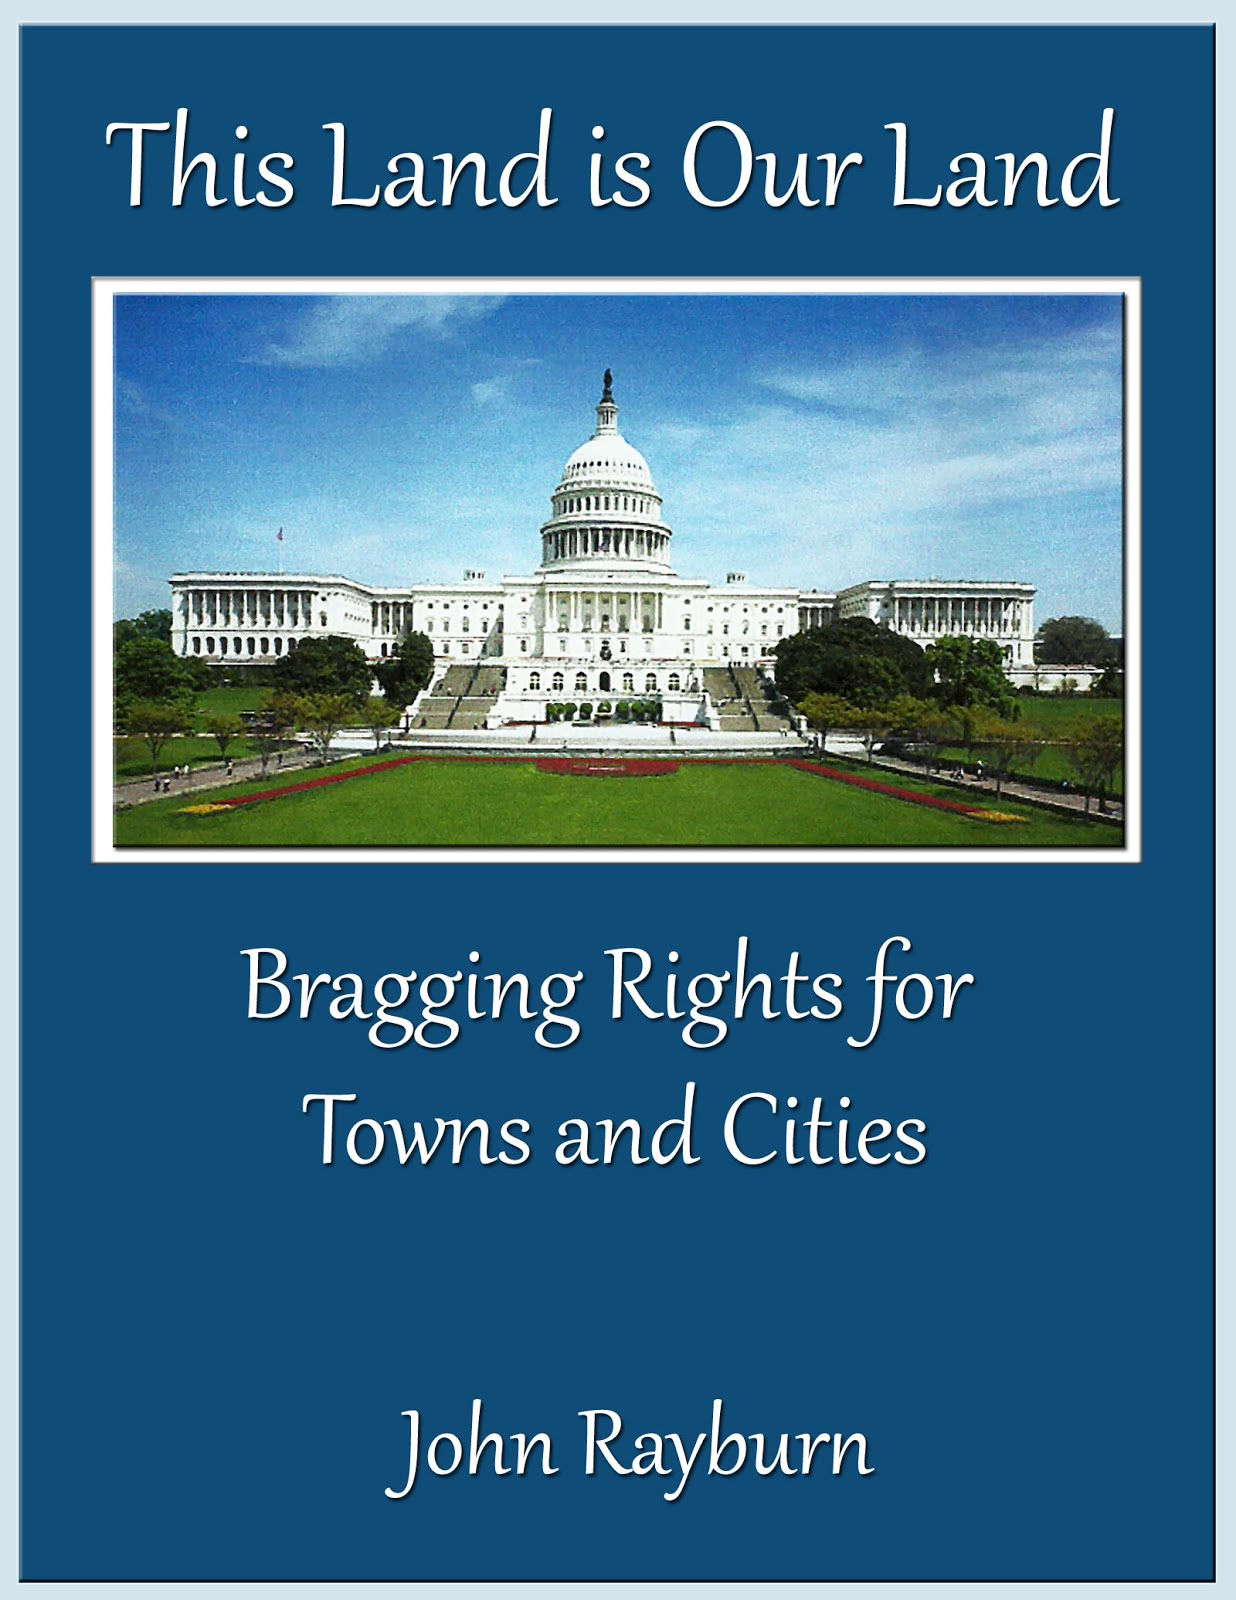 This Land is Our Land: Bragging Rights for Towns and Cities